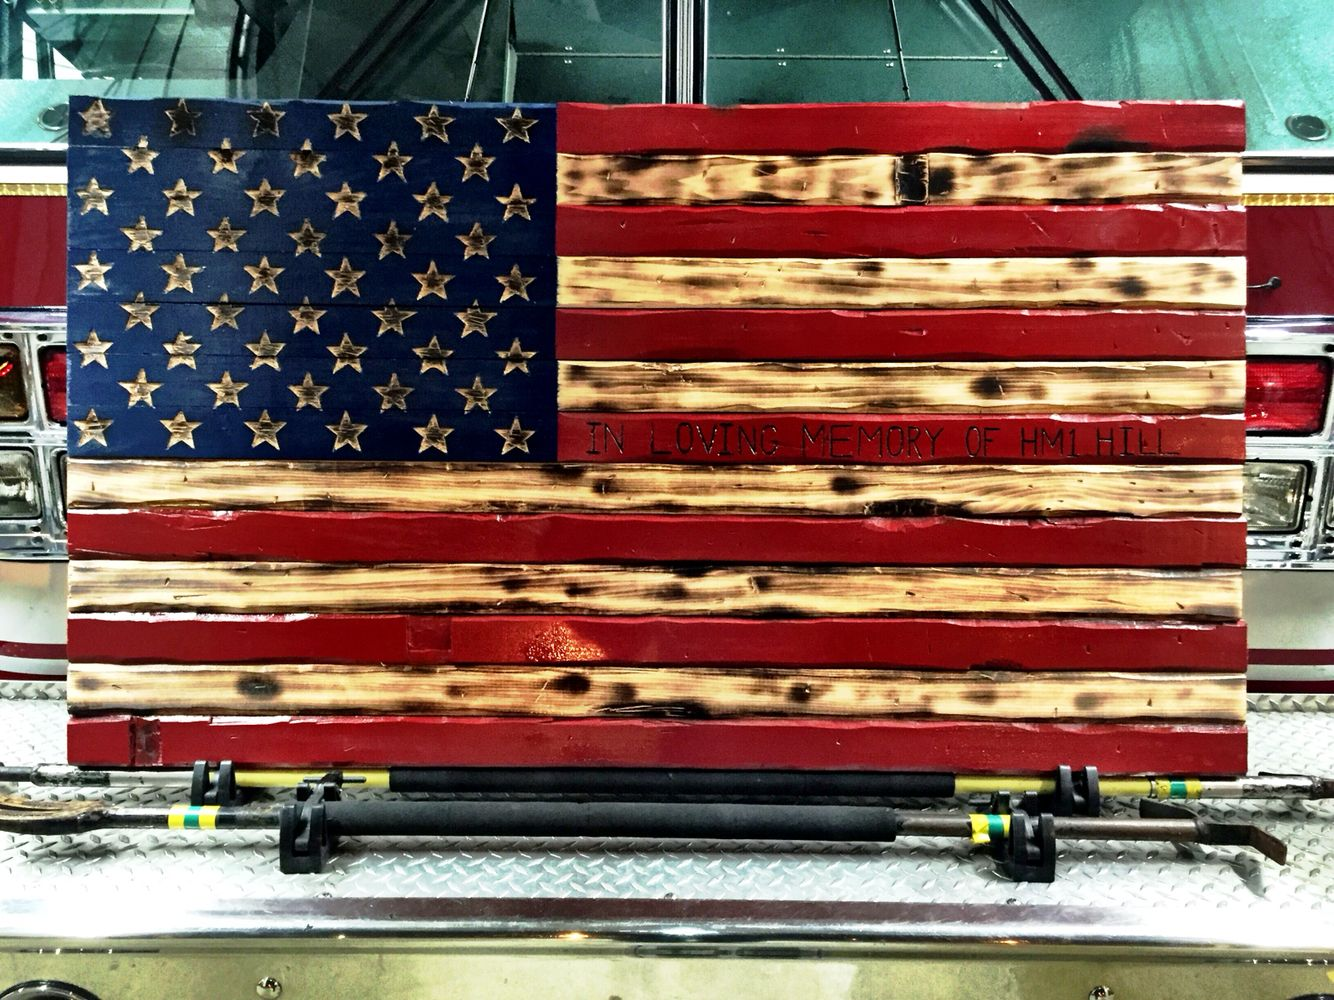 Hand Carved Rustic American Flag. Burned Wood Art. https://www. - Wooden American Flag With Carved Stars And Painted And Charred